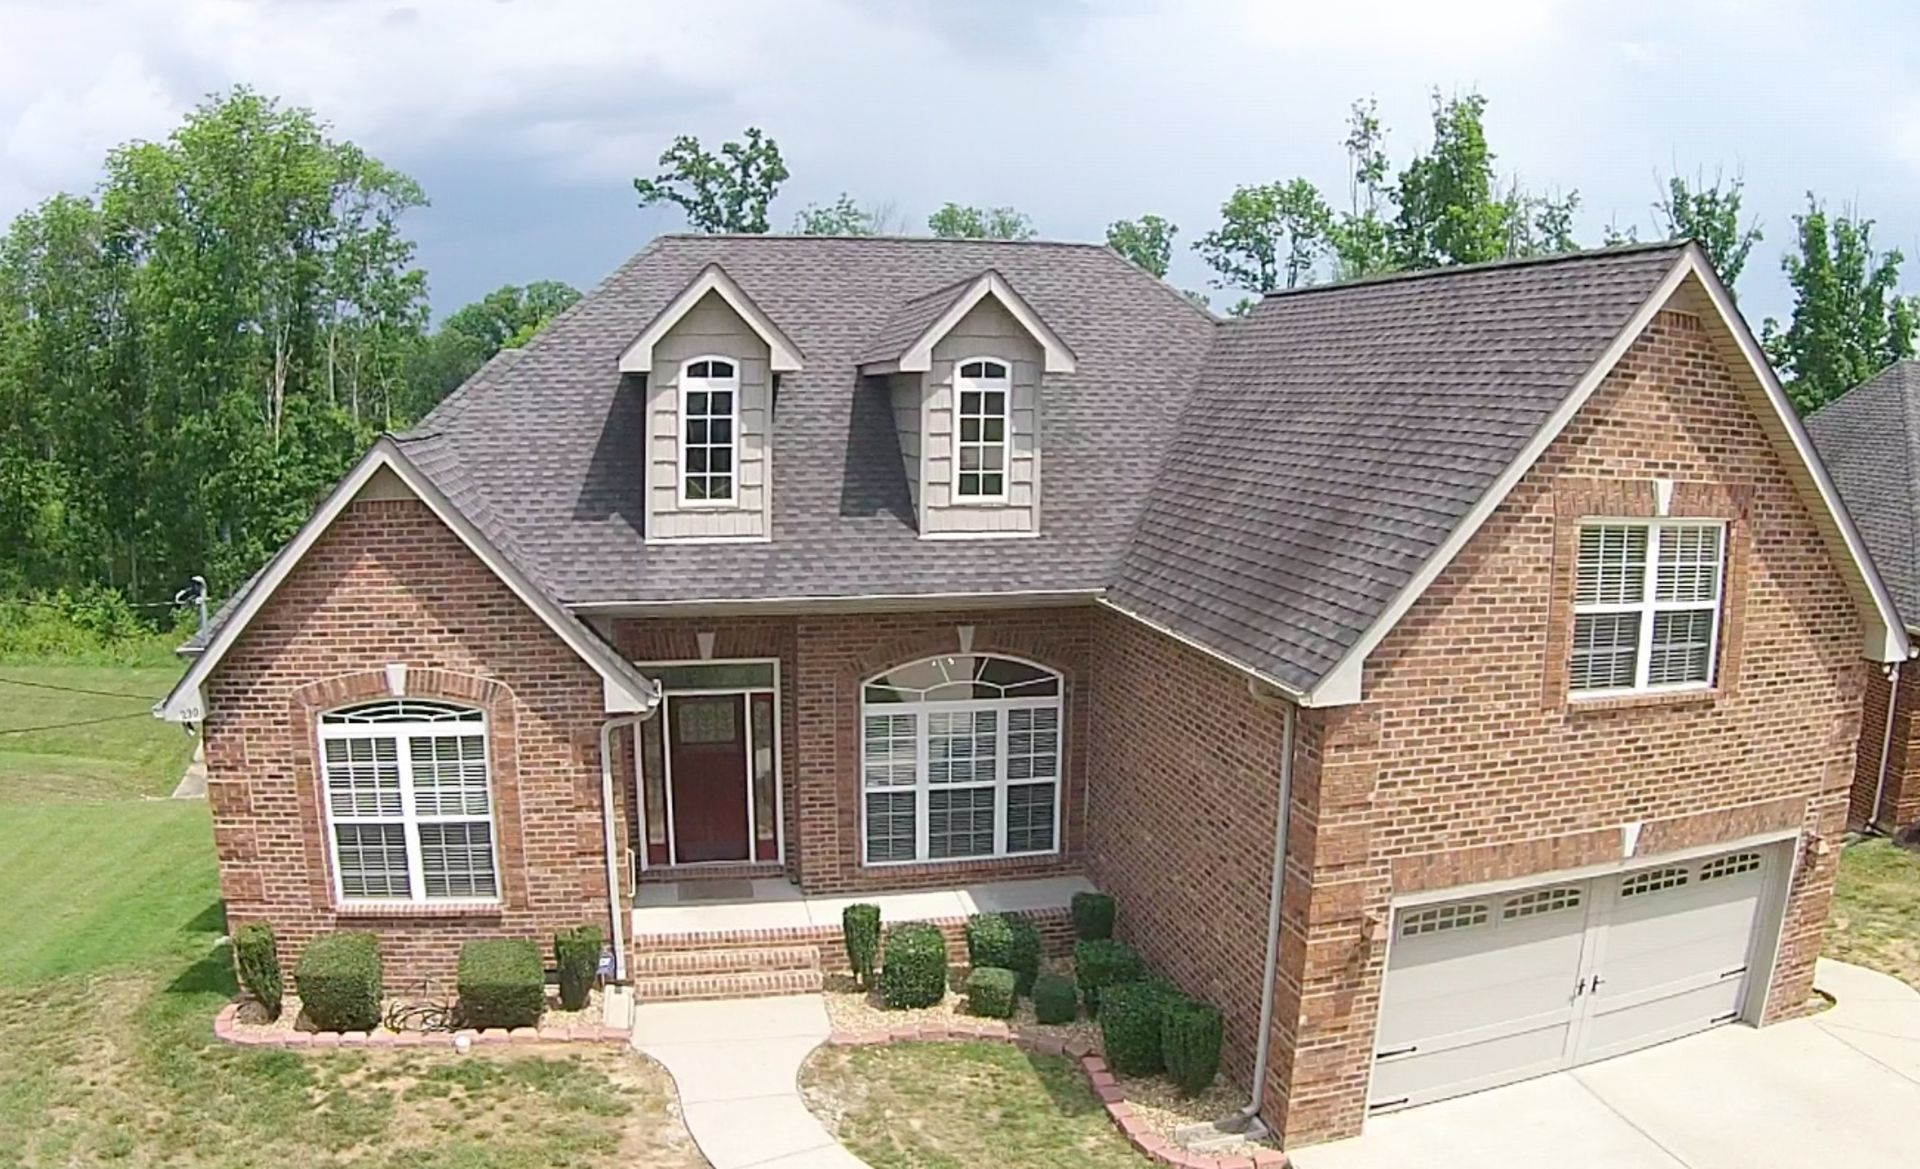 220 Bonifay Dr. Smyrna, TN Video Tour